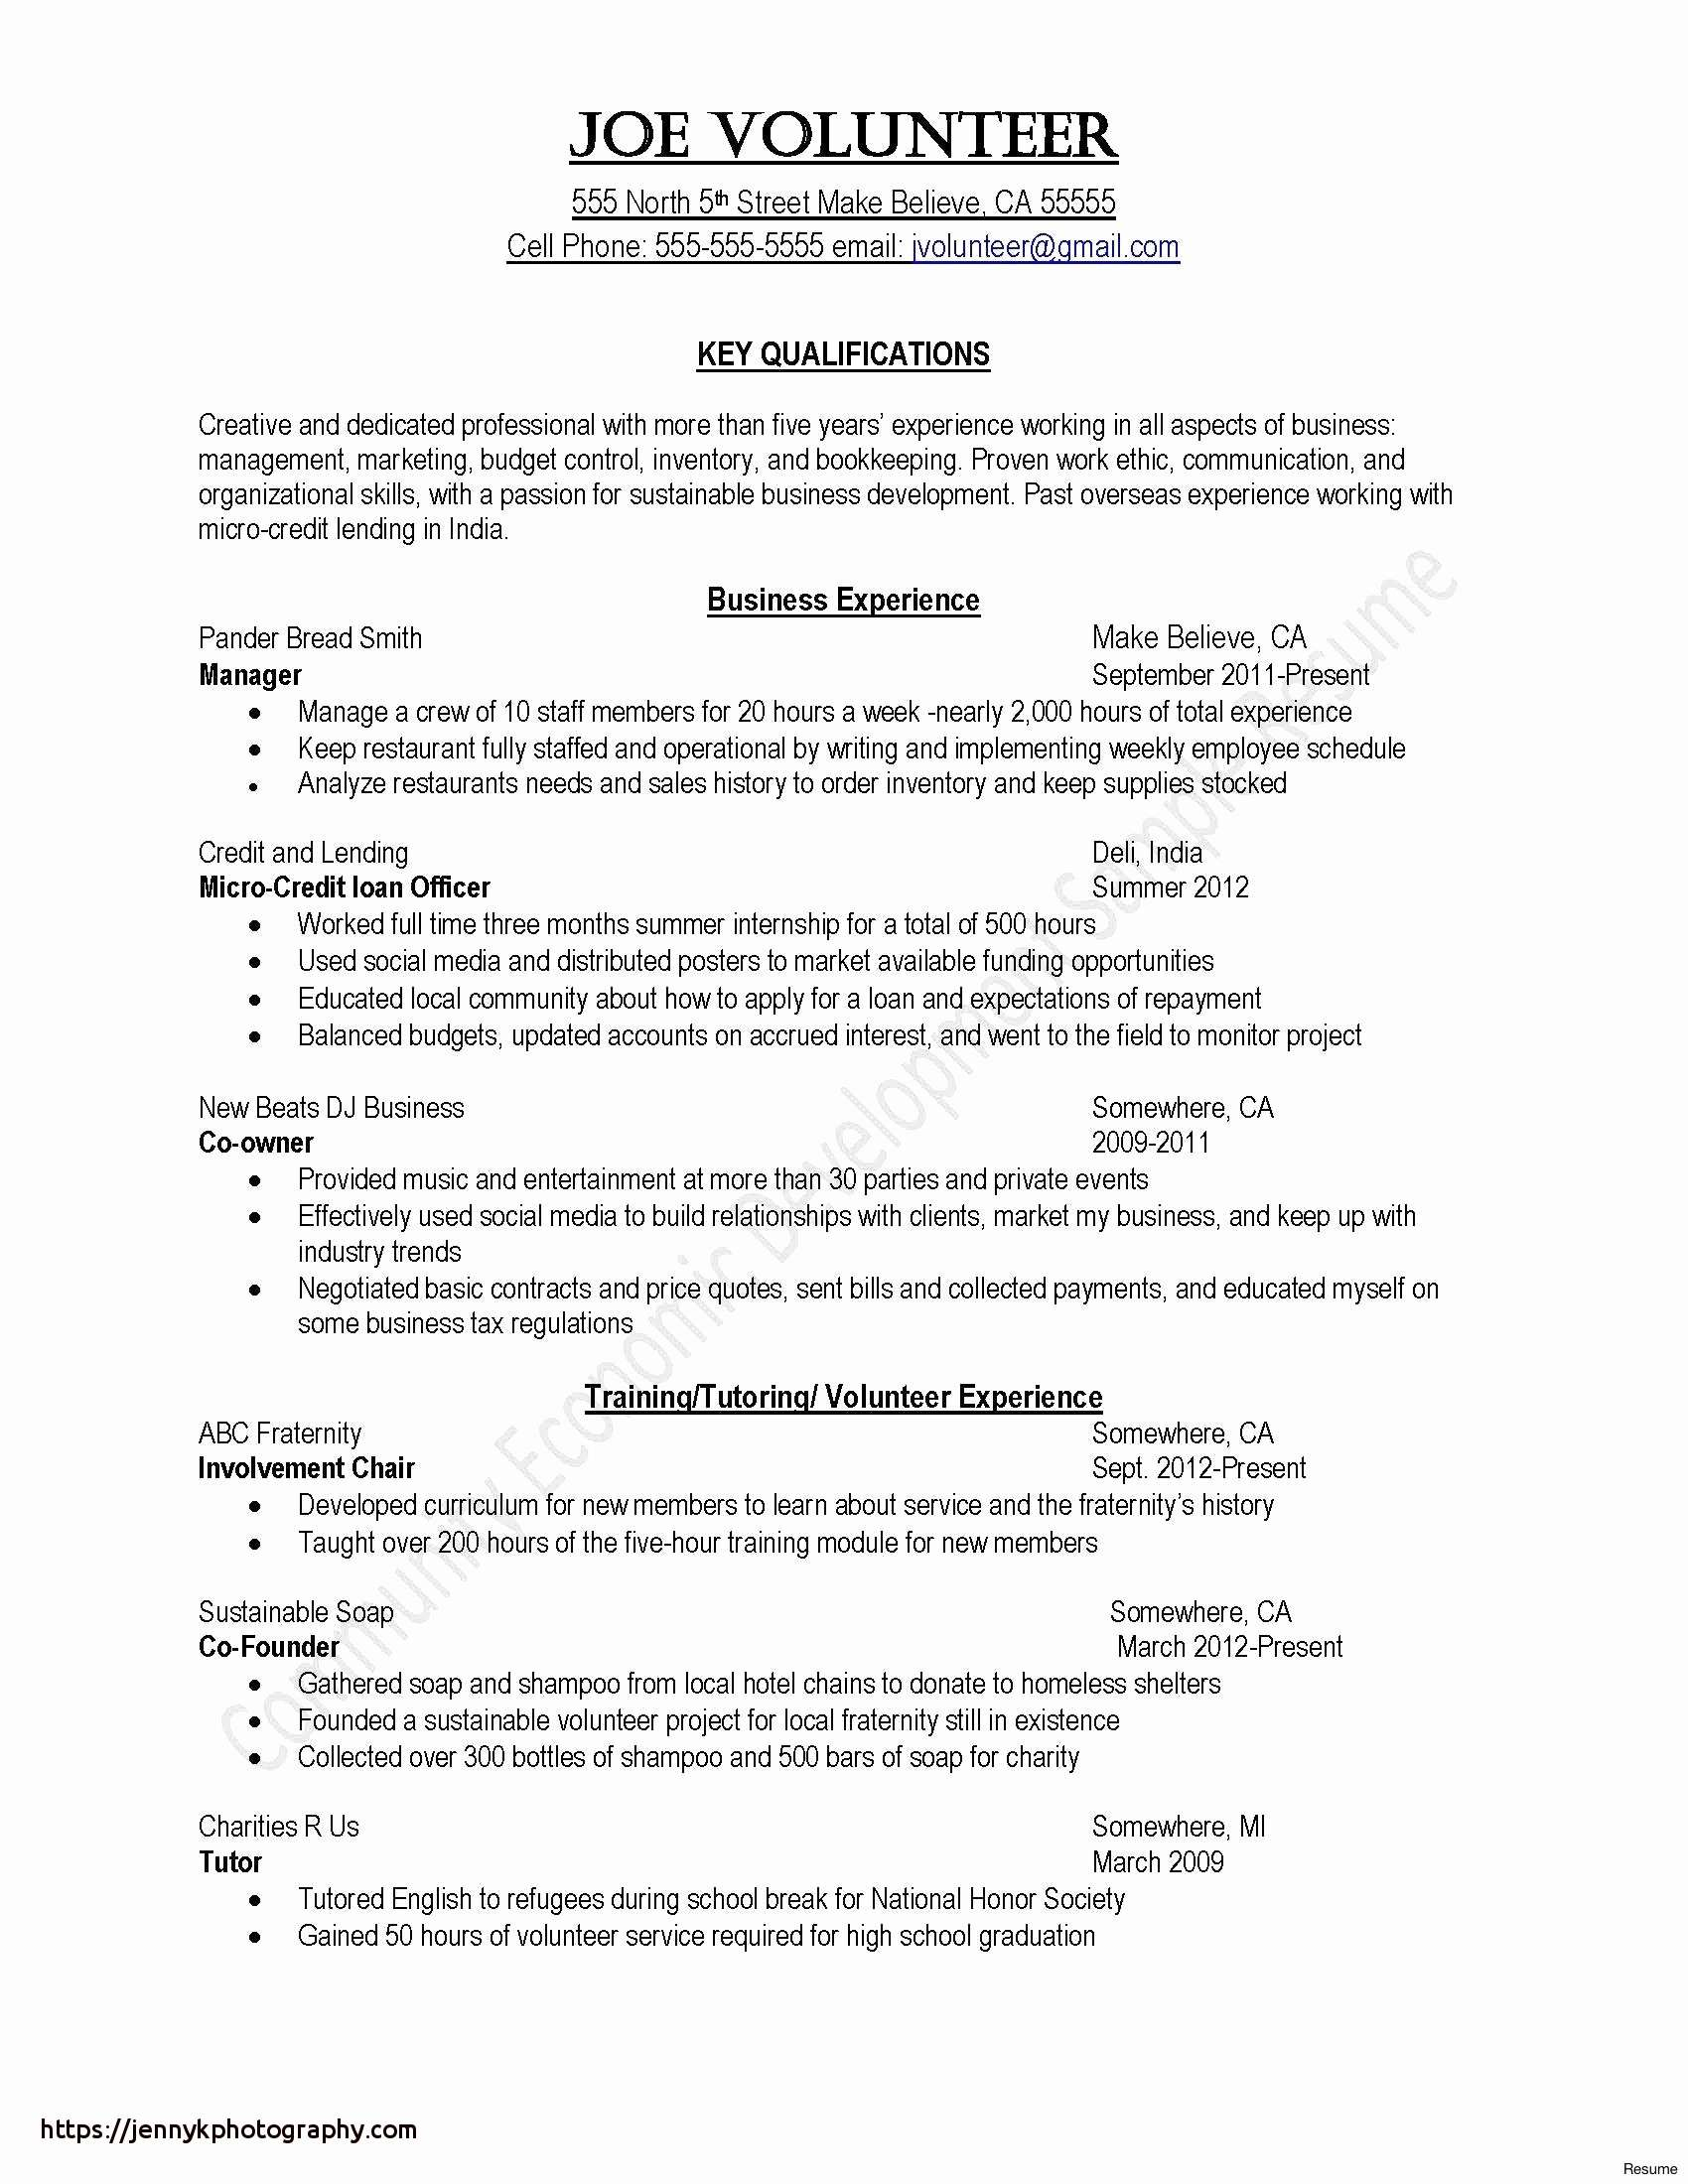 Correctional Officer Job Description Resume - 31 Awesome Correctional Ficer Cover Letter